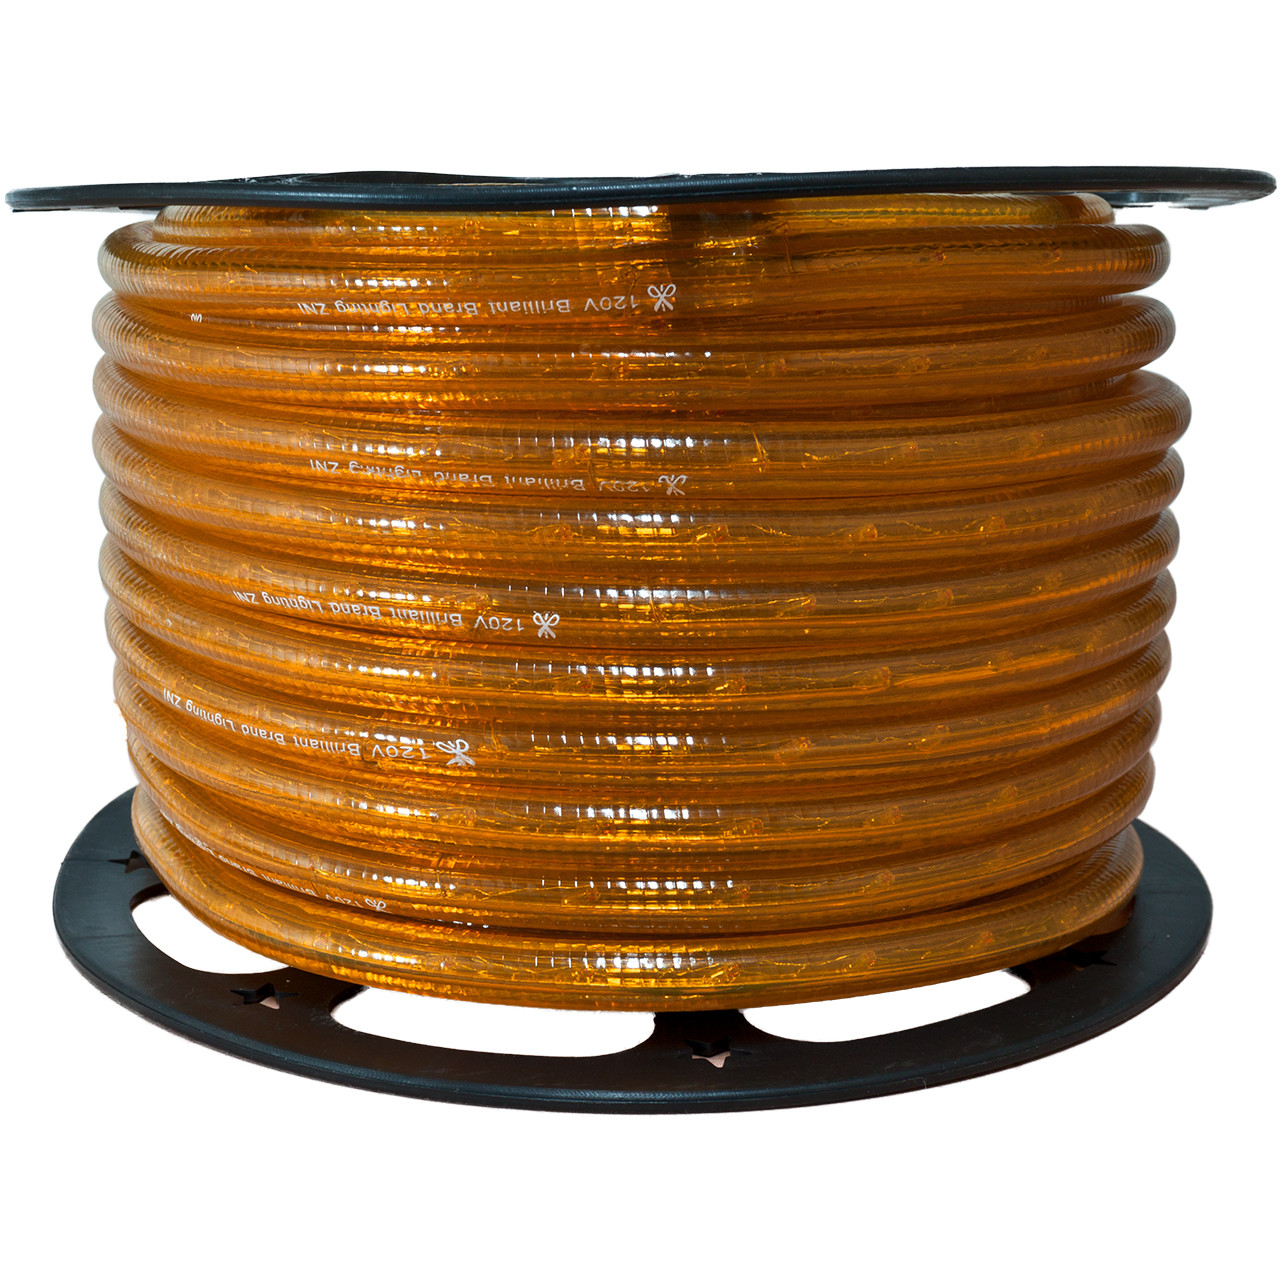 Amber incandescent rope light 120 volt 12 inch 150 feet amber incandescent rope light 120 volt 12 inch 150 feet aloadofball Choice Image